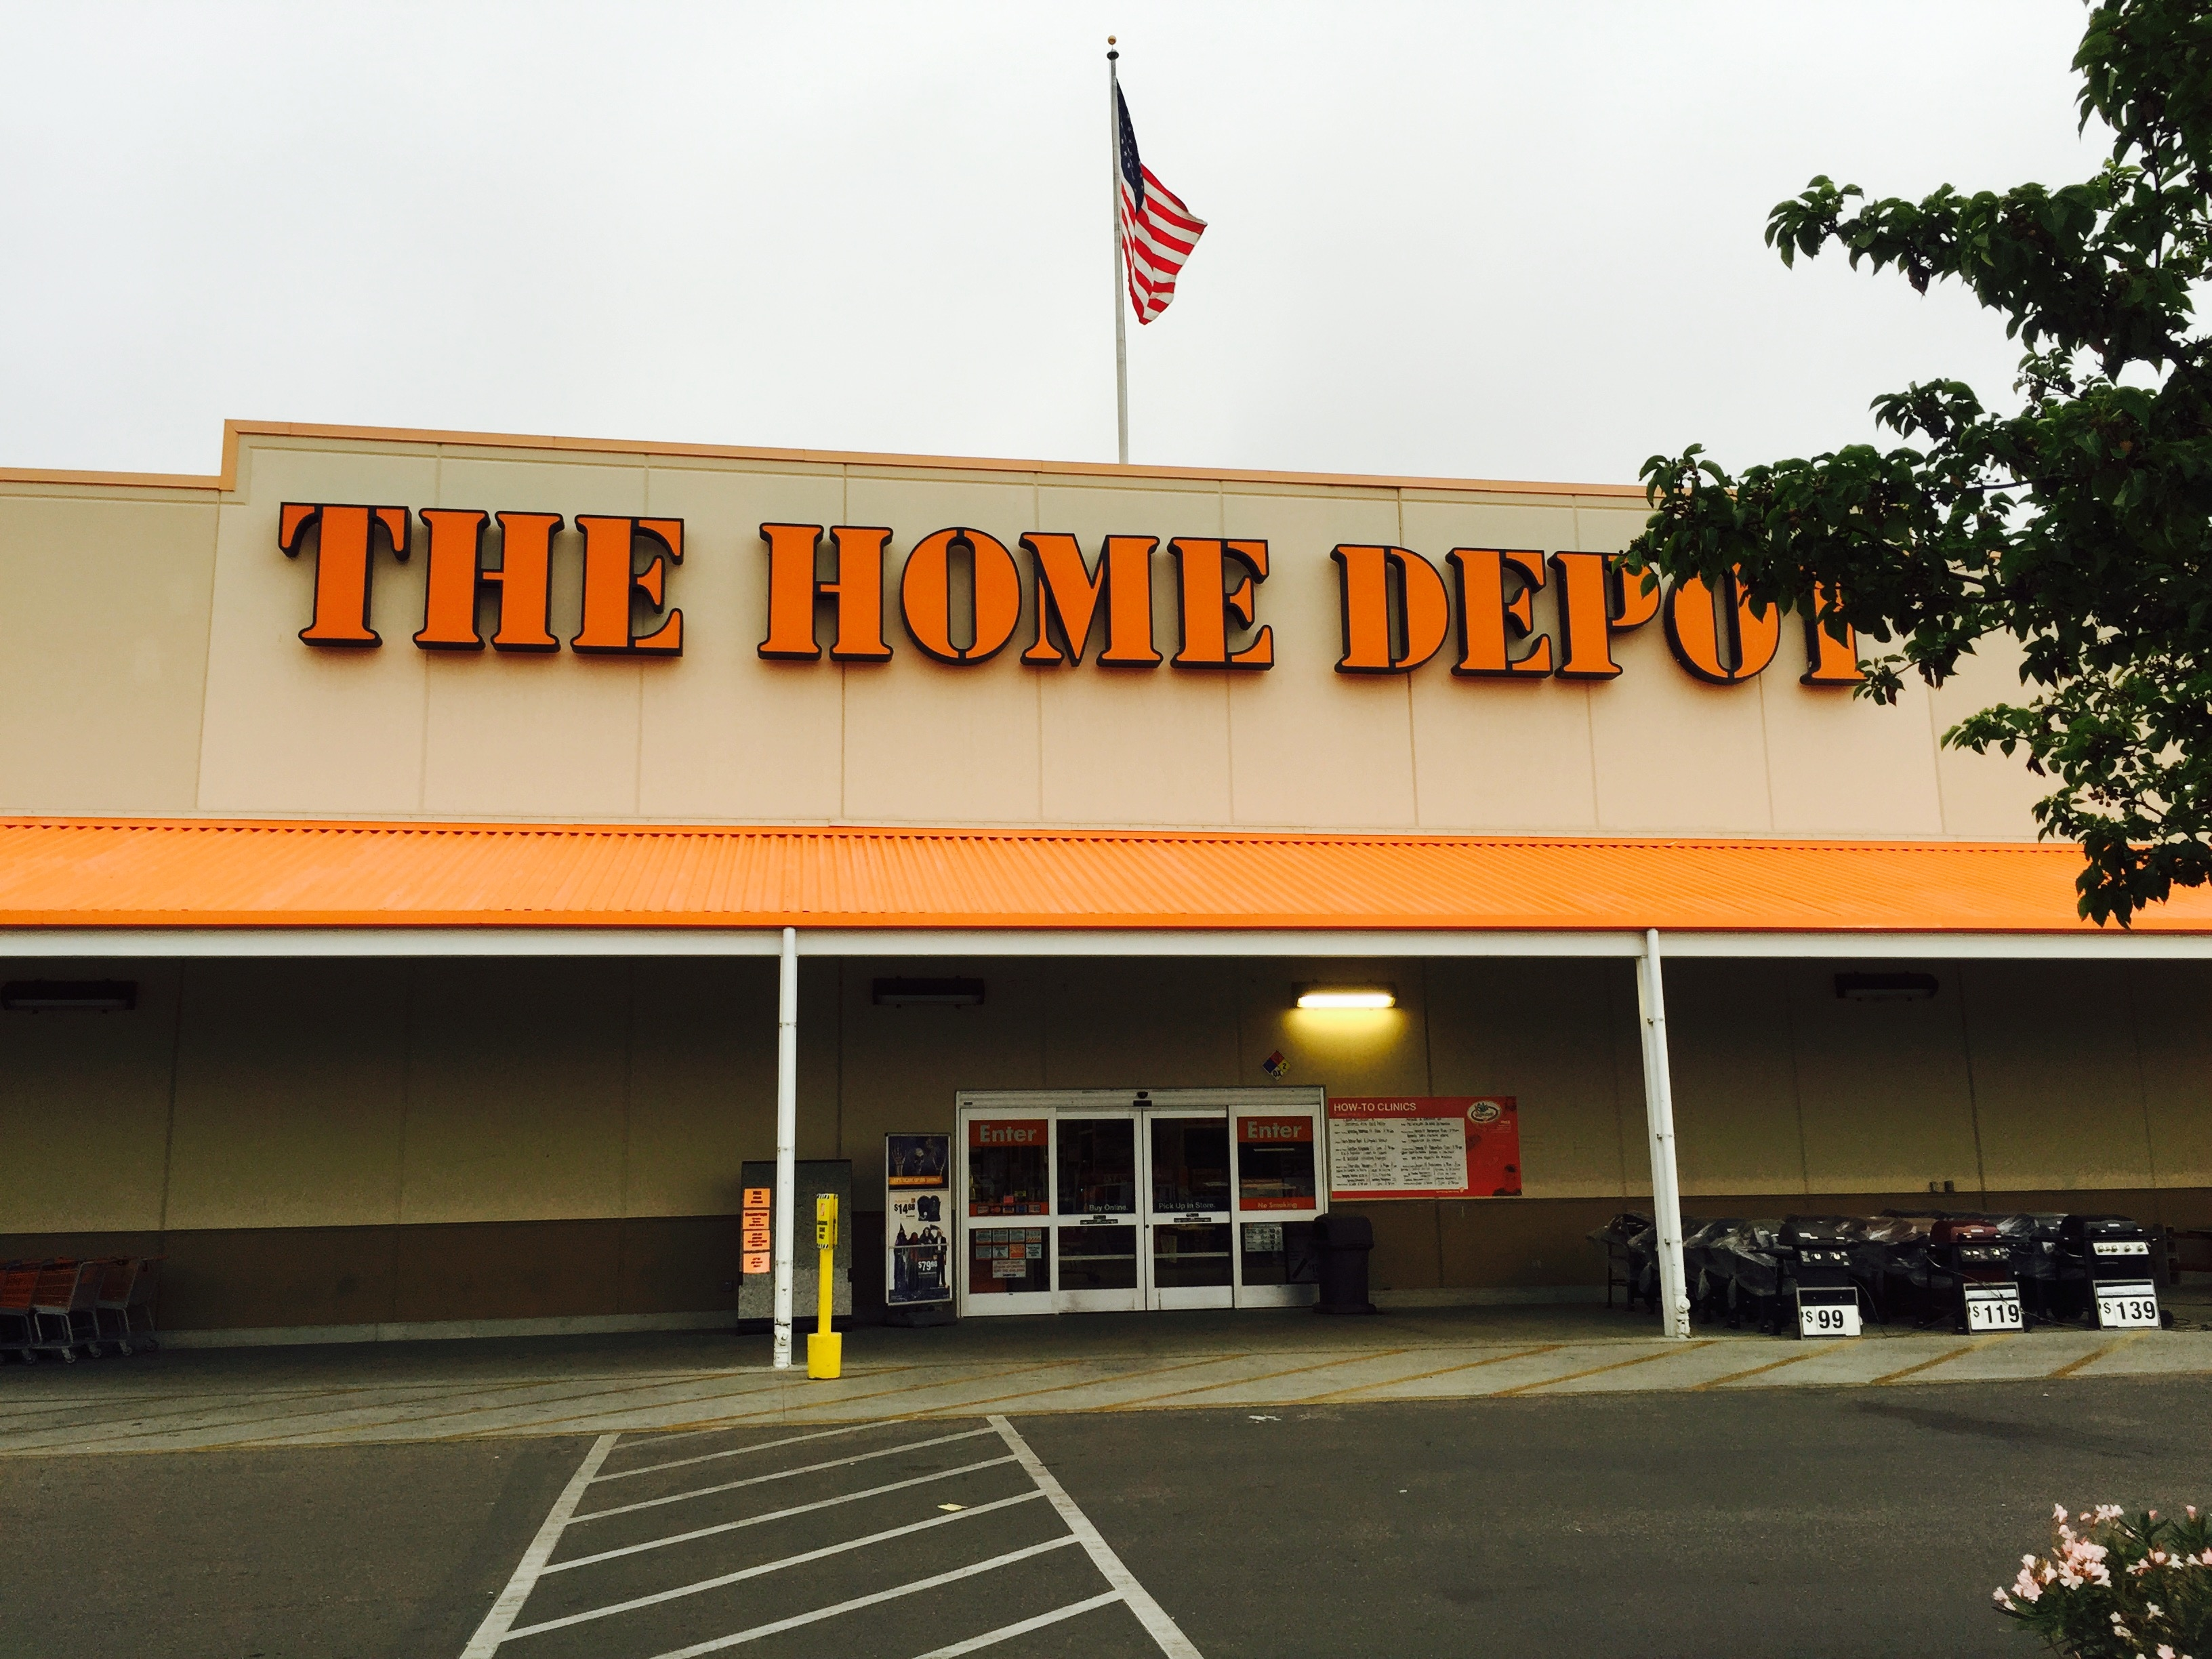 home depot fresno the home depot fresno ca business page 28657